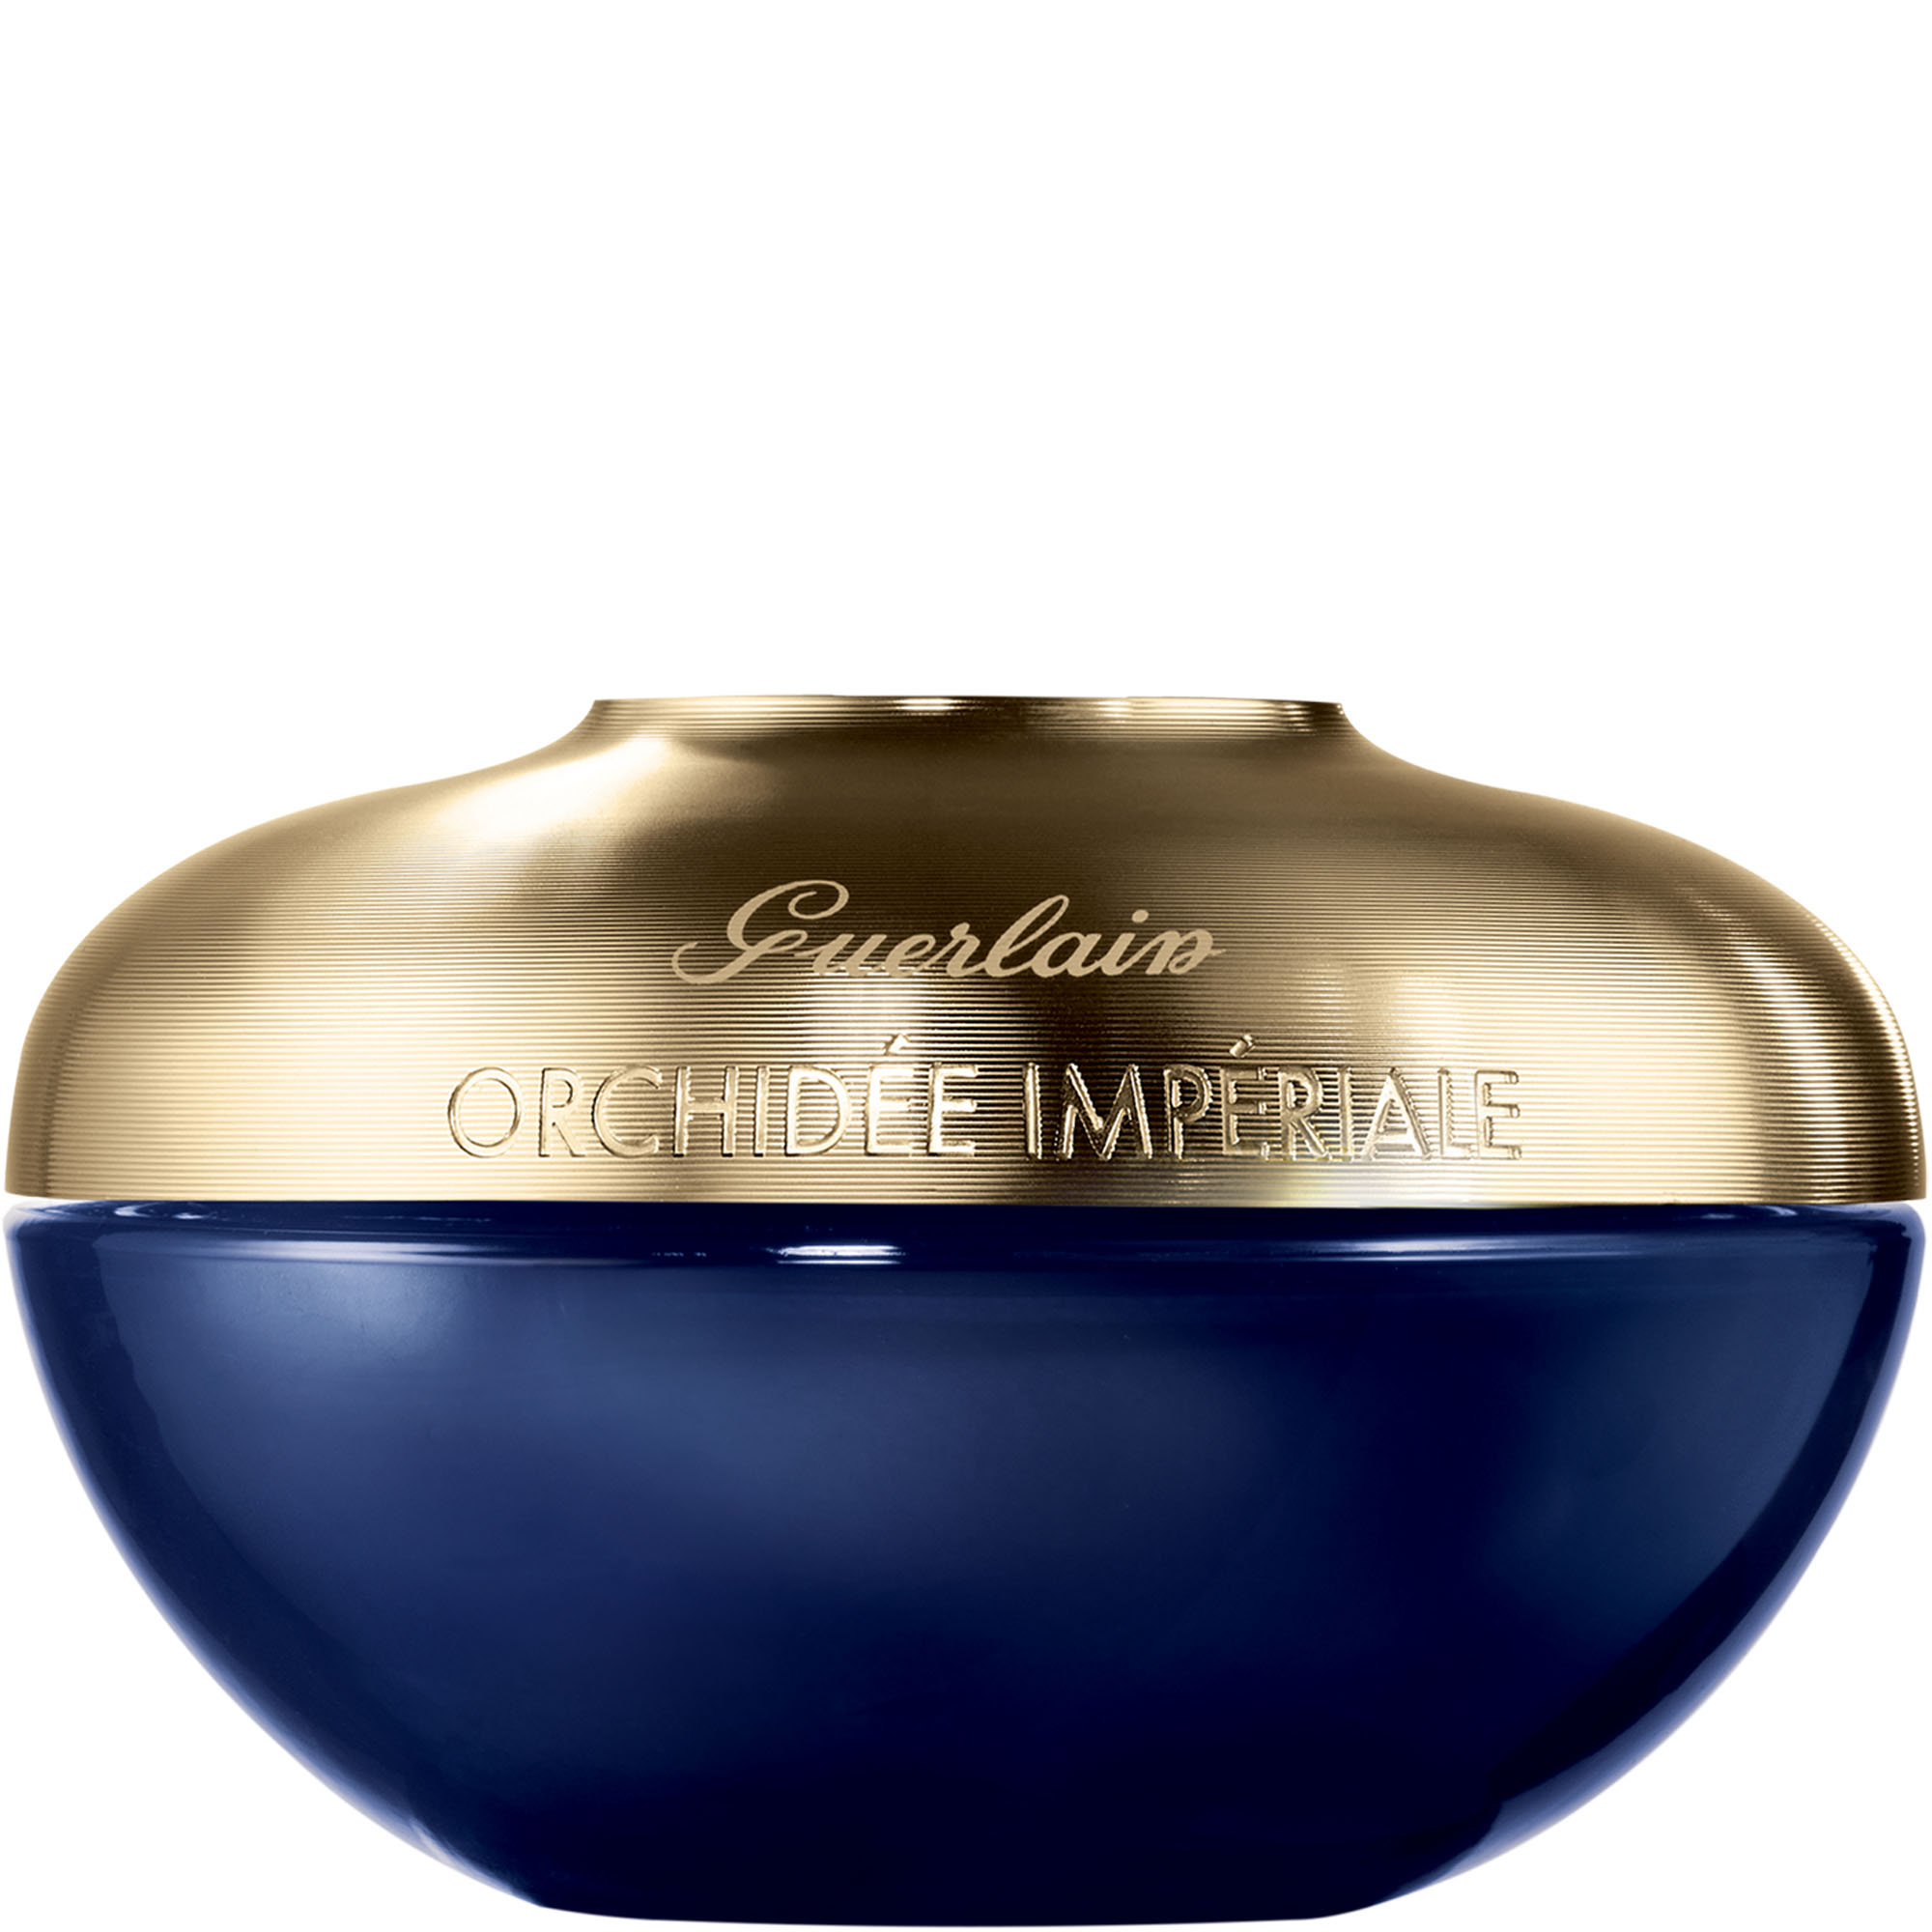 related product products/images/Guerlain-OrchideImprialeCream.jpg